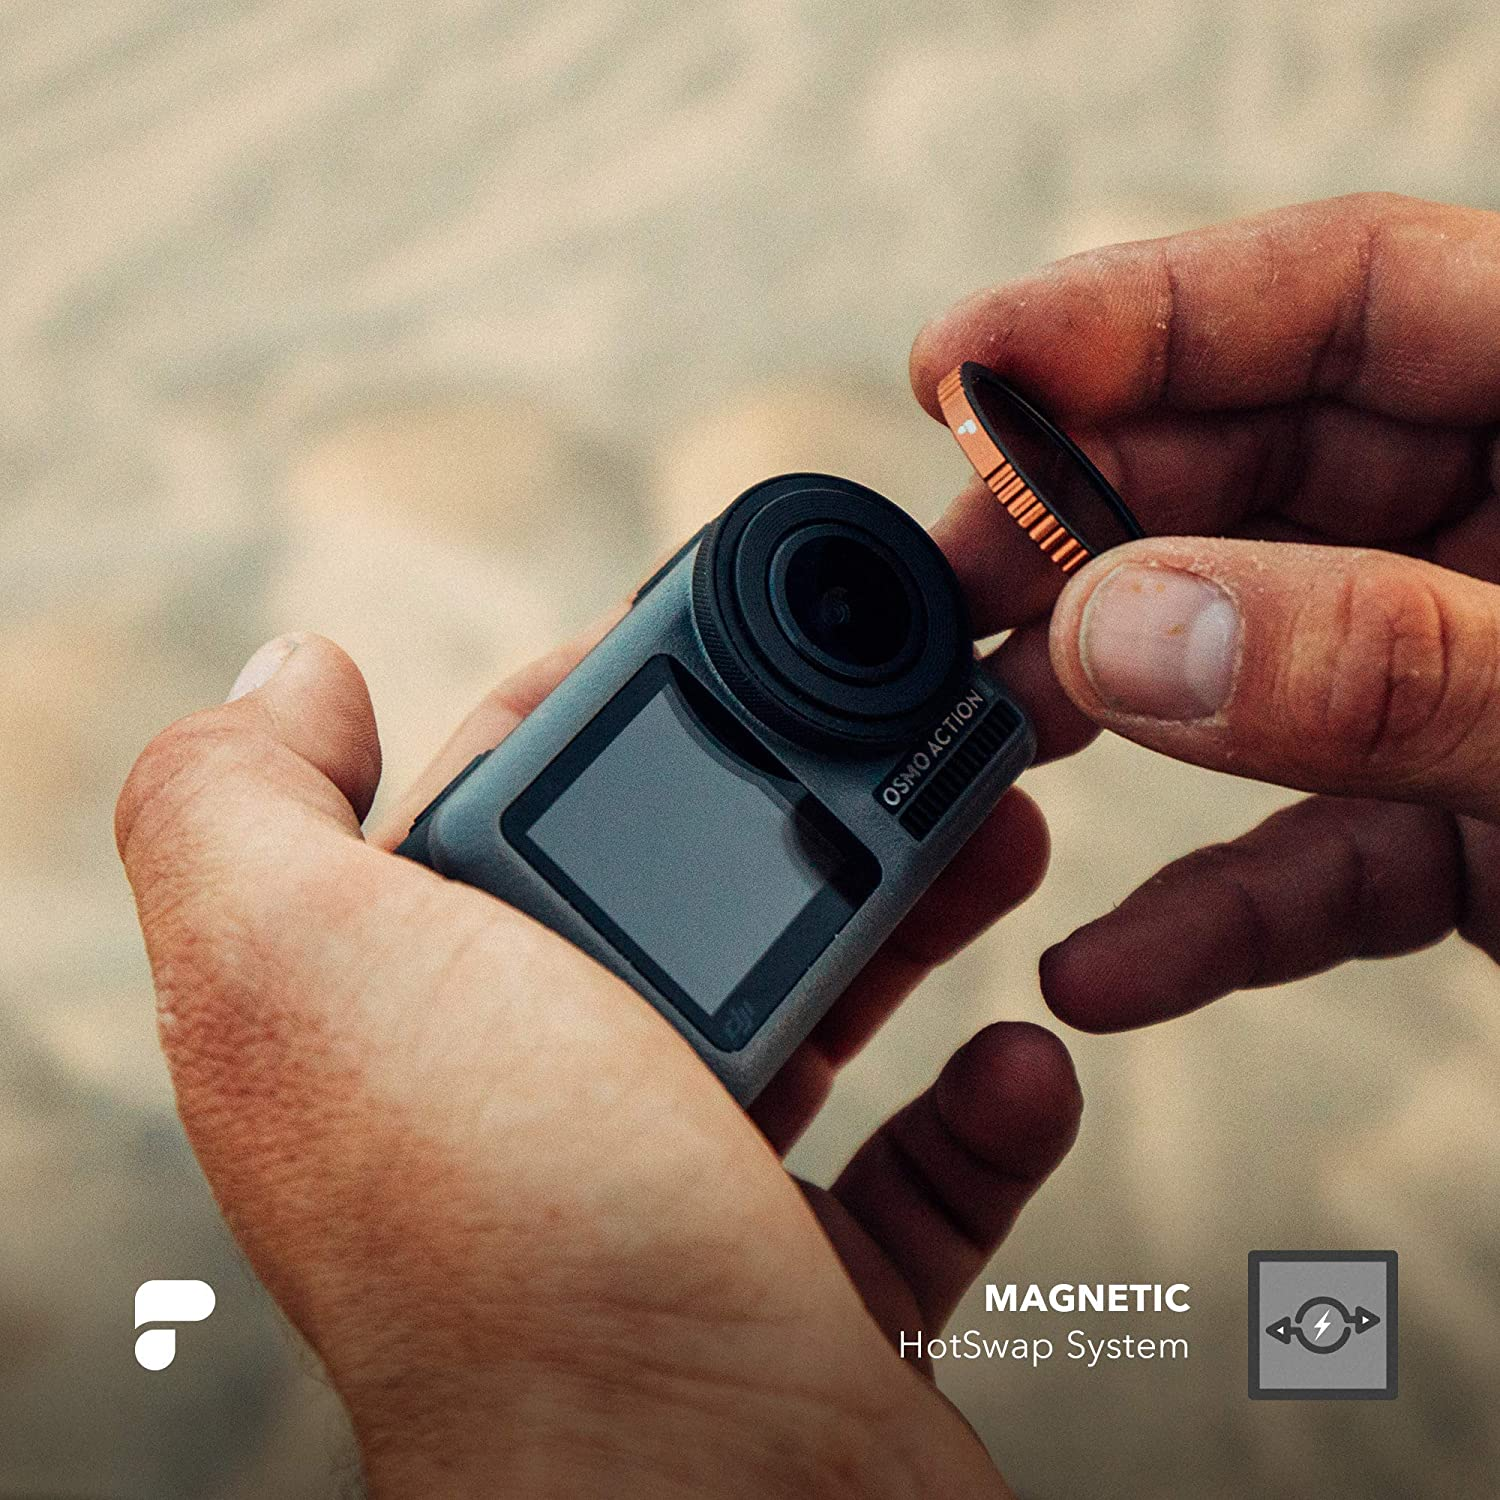 Magnetic HotSwap Filter System PolarPro Cinematographer Filter 10-Pack for DJI Osmo Action